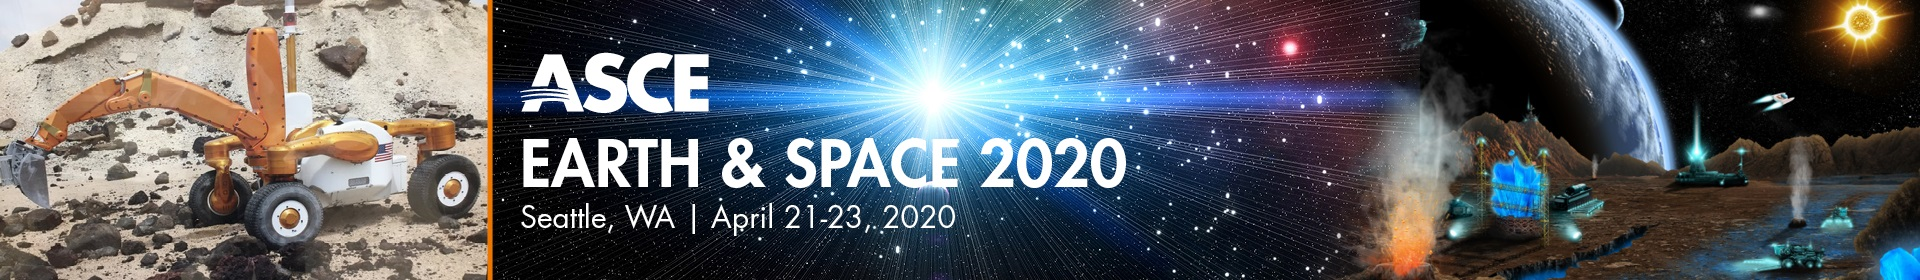 Earth & Space 2020 - Additional Abstracts Event Banner